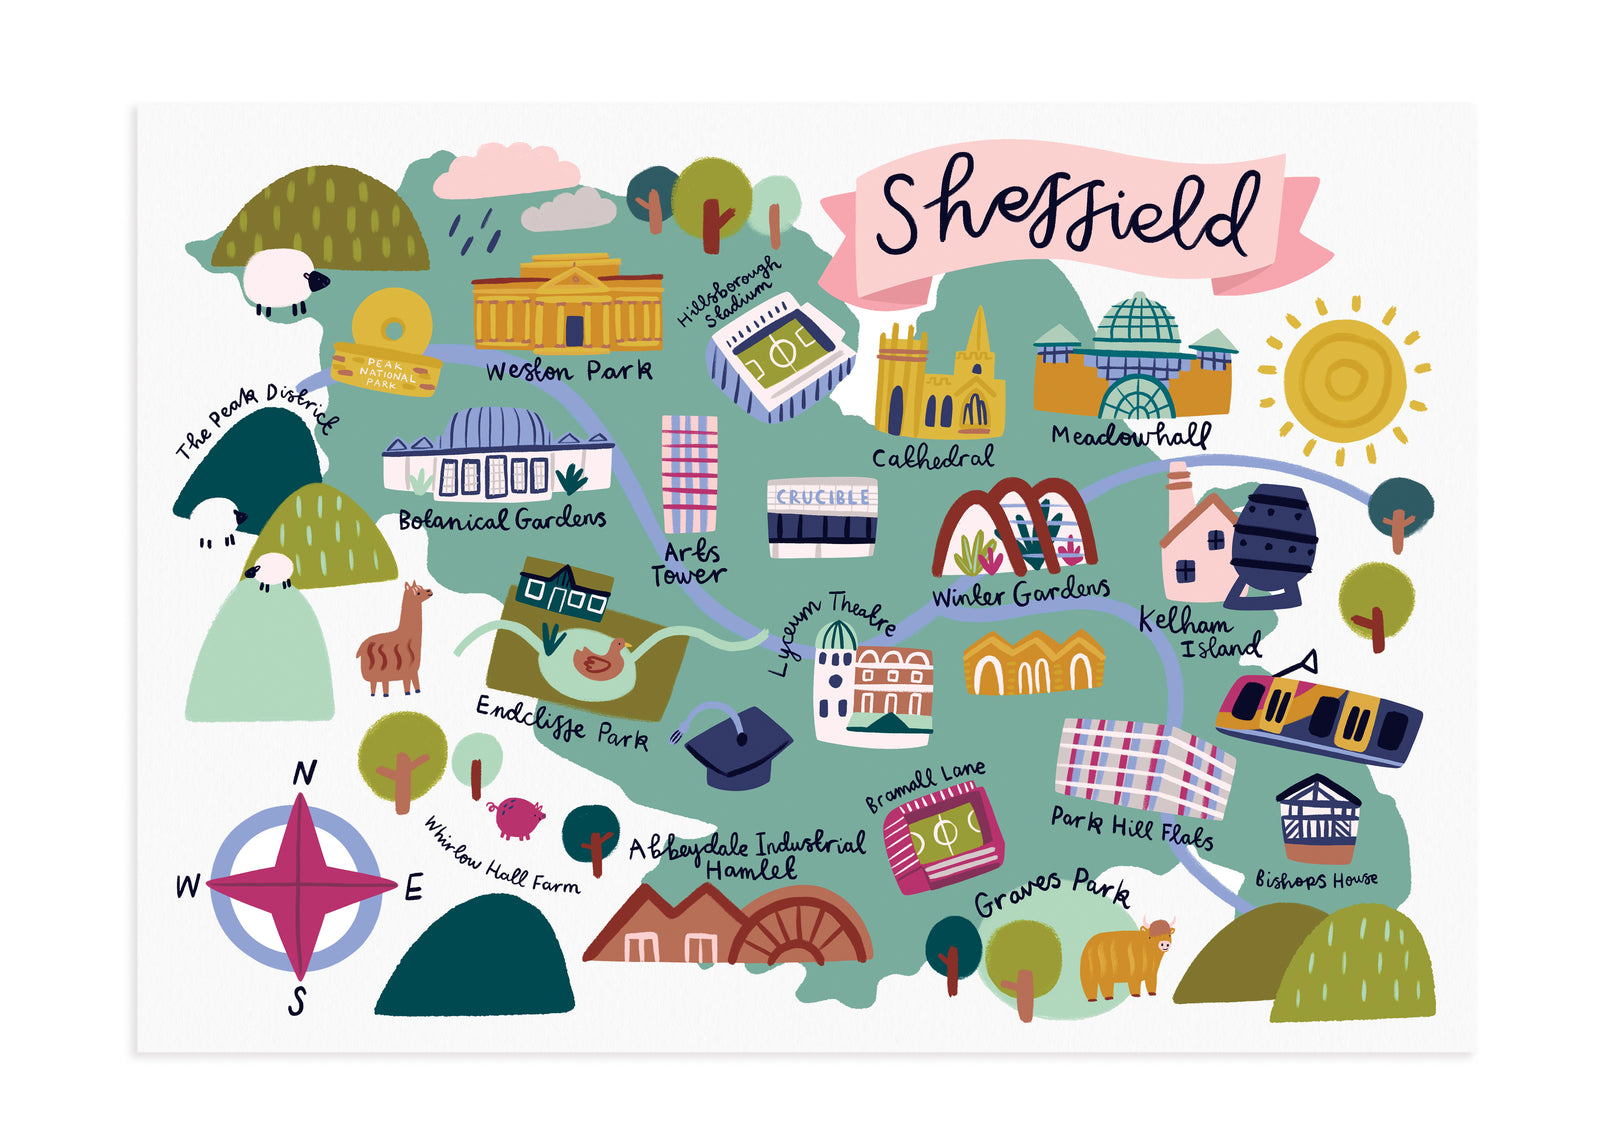 The City of Sheffield Print